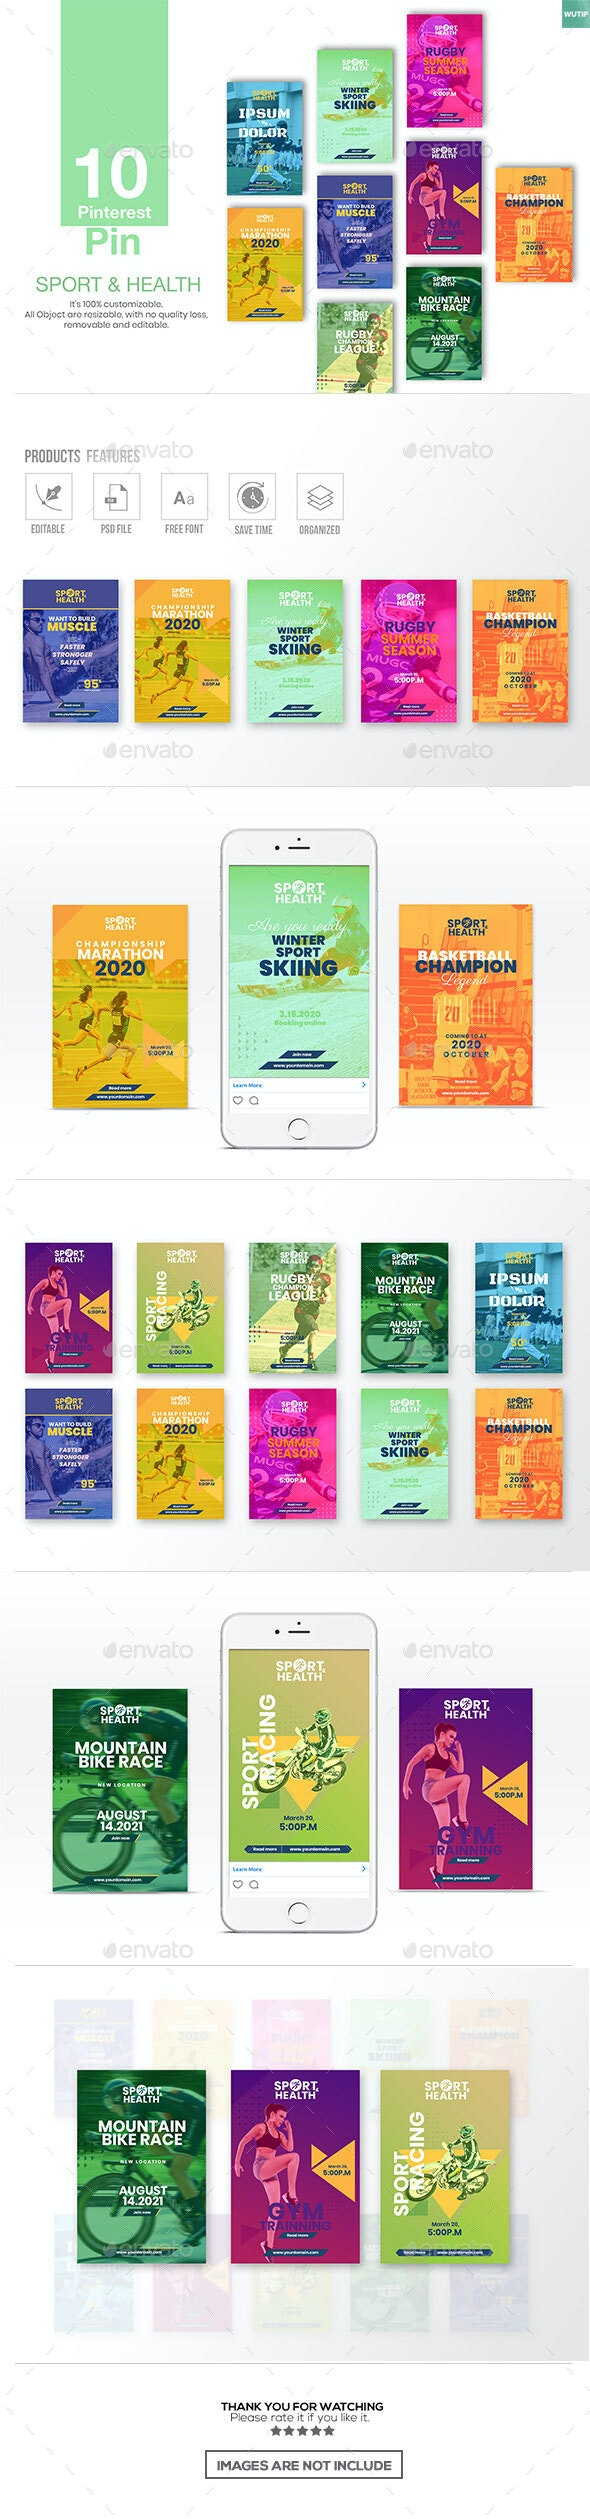 10 Pinterest Pin Banner - Sport and Health - Miscellaneous Social Media